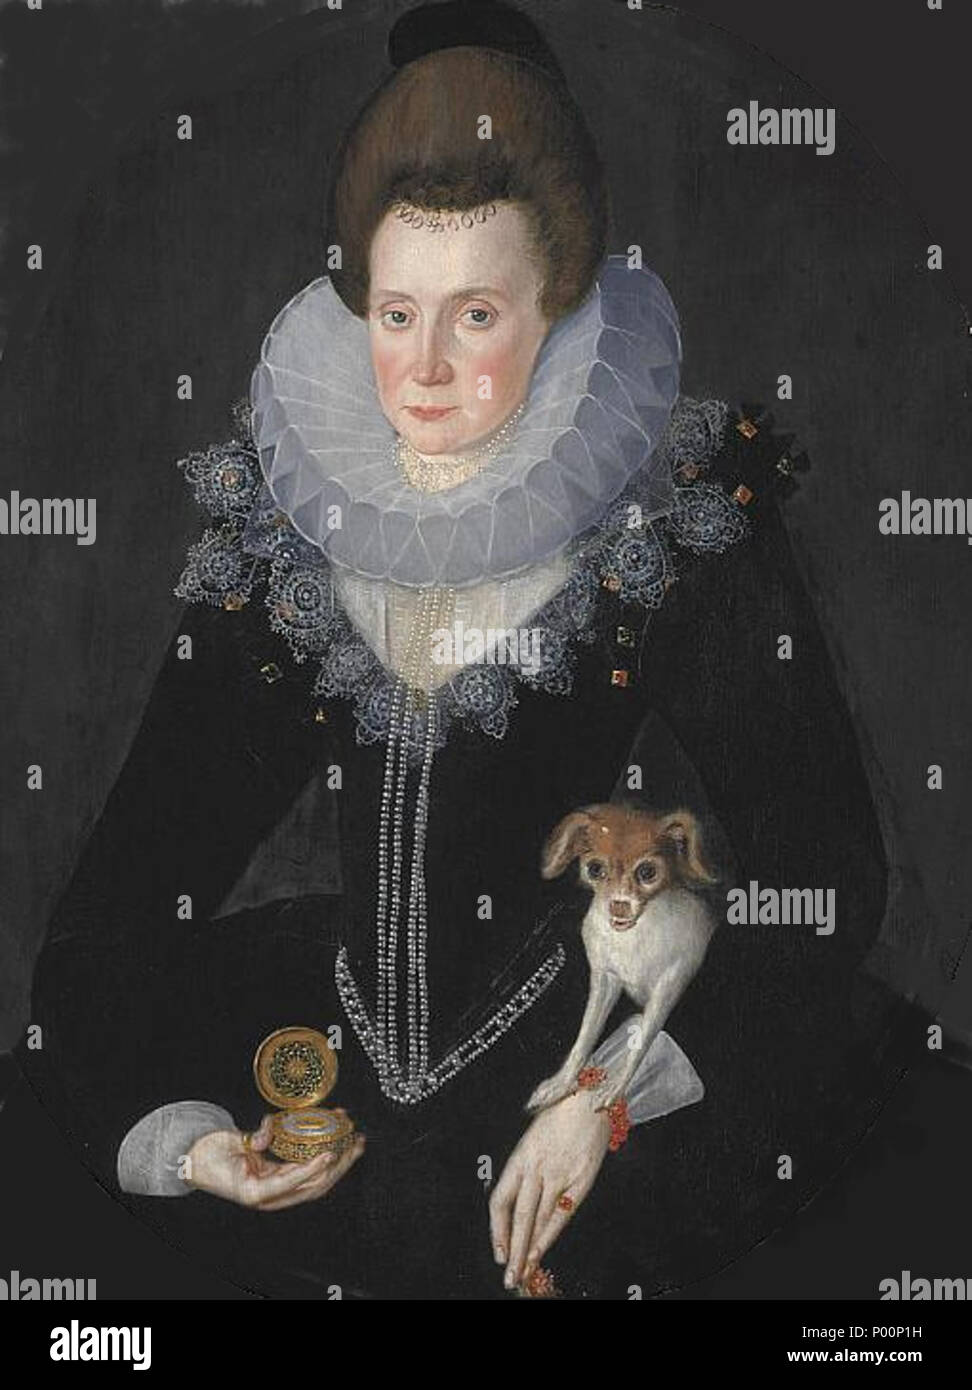 . Lady Arabella Stuart, also known as Arbella. She was at one time considered heir to the English and Scottish thrones, though she did not aspire to them. She died of self-inflicted starvation in the Tower of London, in 1615. Contrary to the title given by the Scottish National Galleries, her father was either the 5th earl of Lennox, or the 1st earl of Lennox of the 3rd creation.  . Lady Arbella Stuart. Ca. 1577 - 1615. Only daughter of the 6th Earl of Lennox. 1605 16 Lady Arabella Stuart - Stock Image